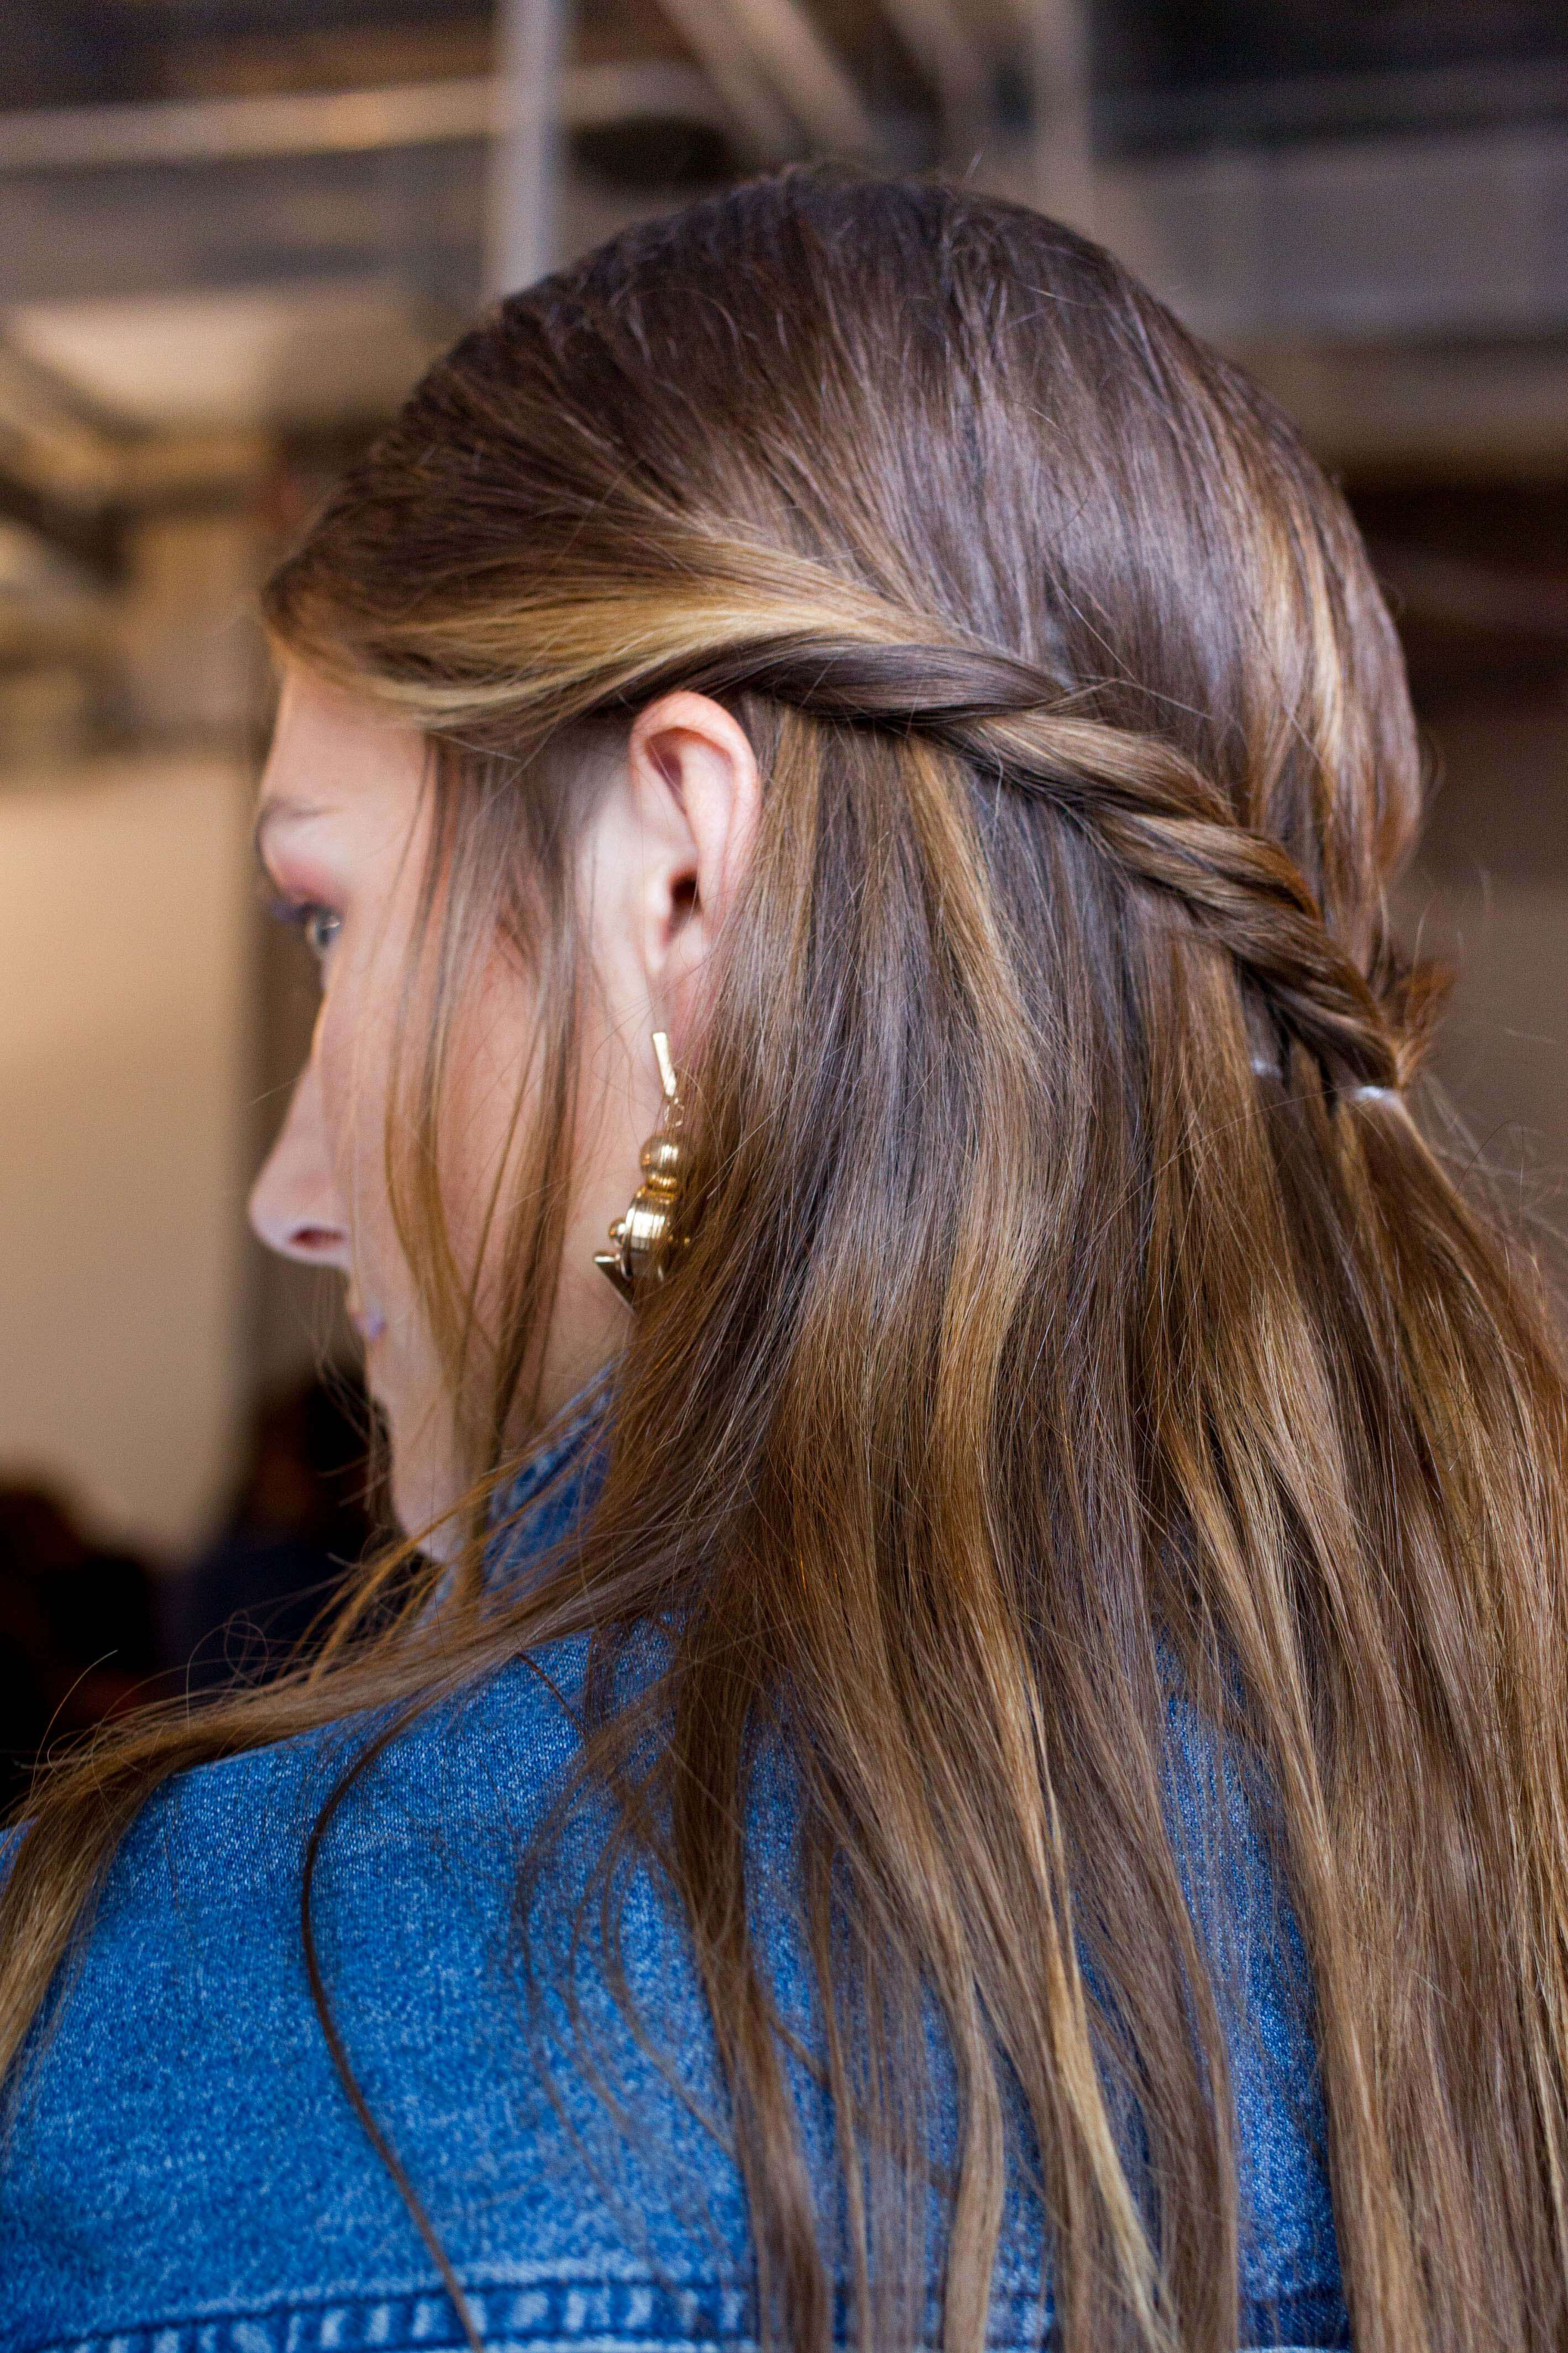 25 wedding guest hairstyles that'll make you the chicest